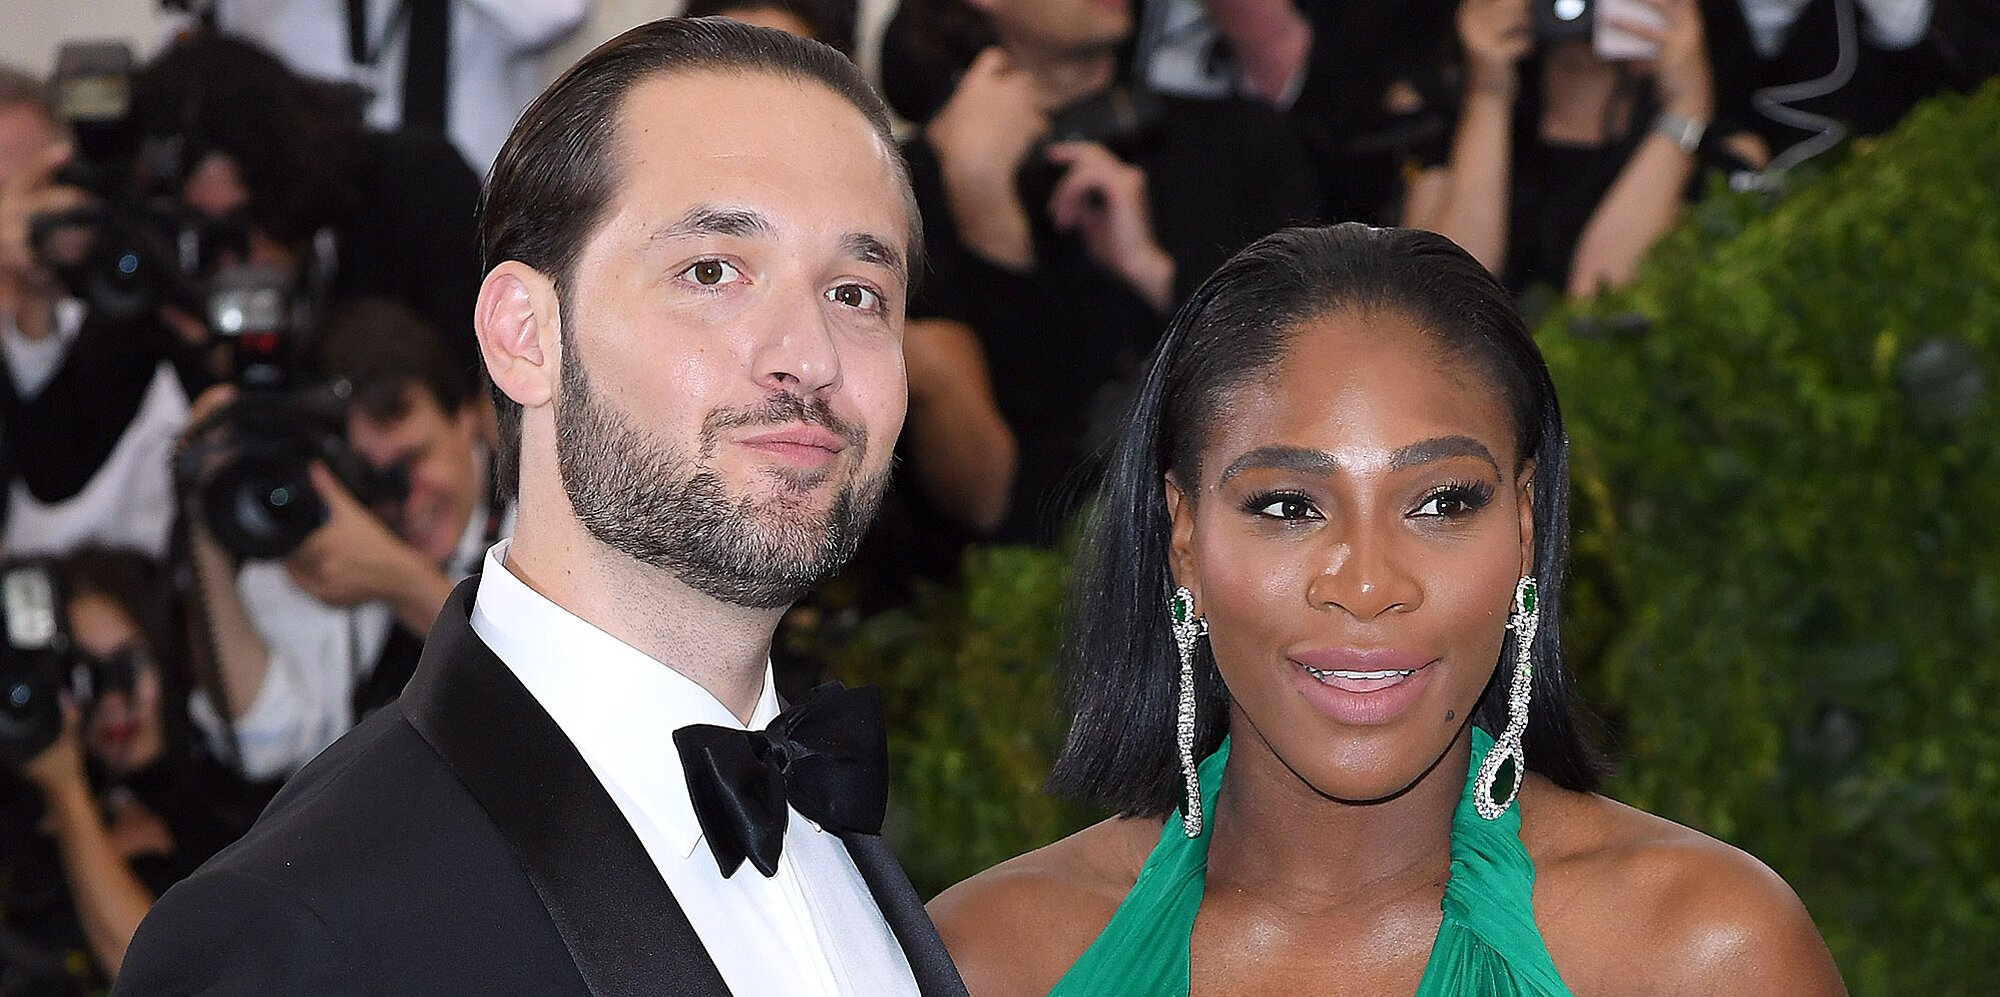 Alexis Ohanian Shares How Wife Serena Williams Helped Him Learn to Unplug: 'I Really Took This to Heart'